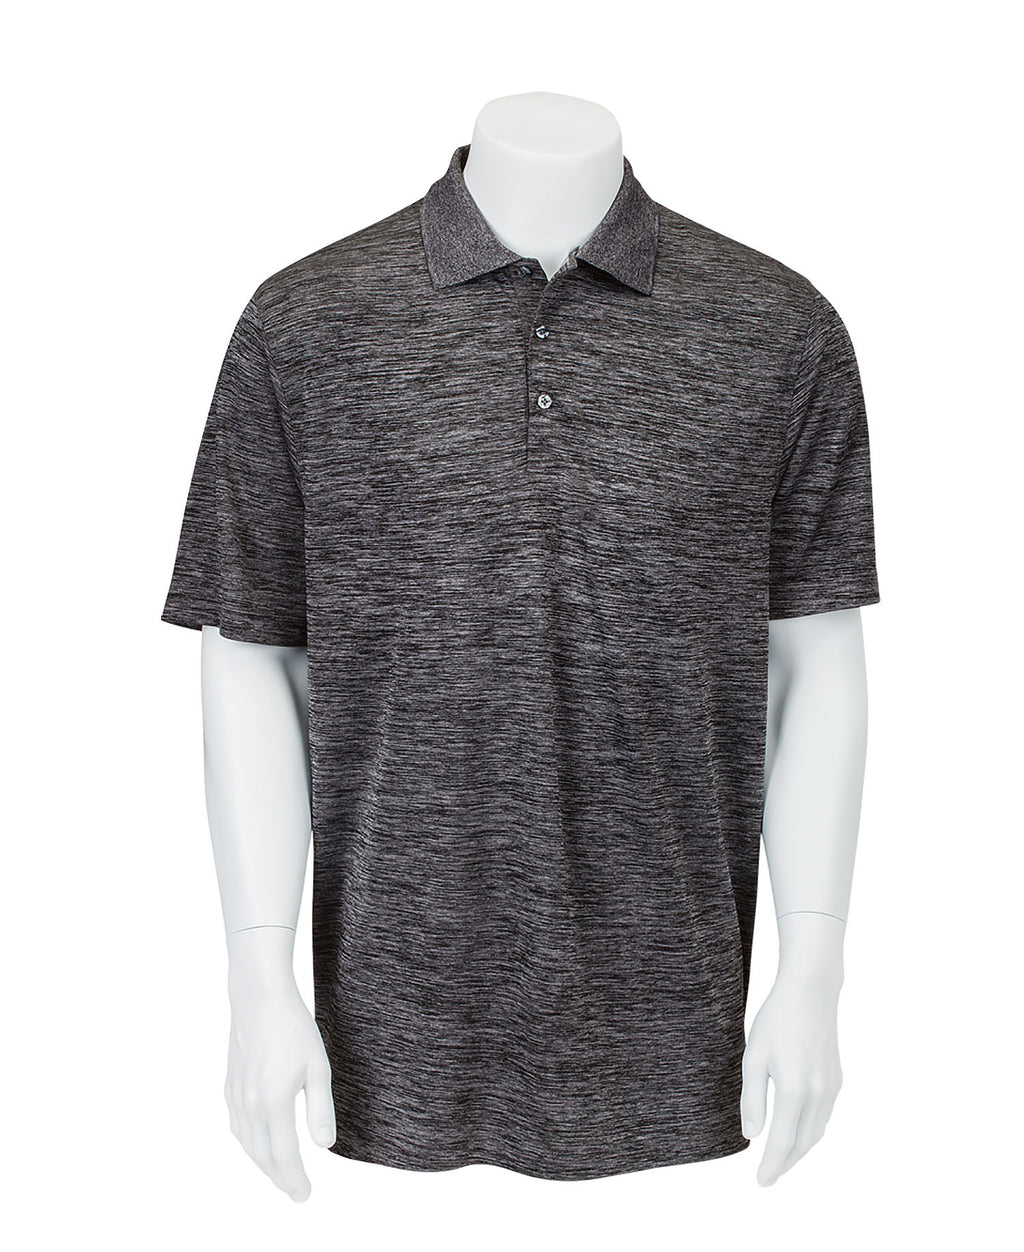 Men's Performance Striated Polo